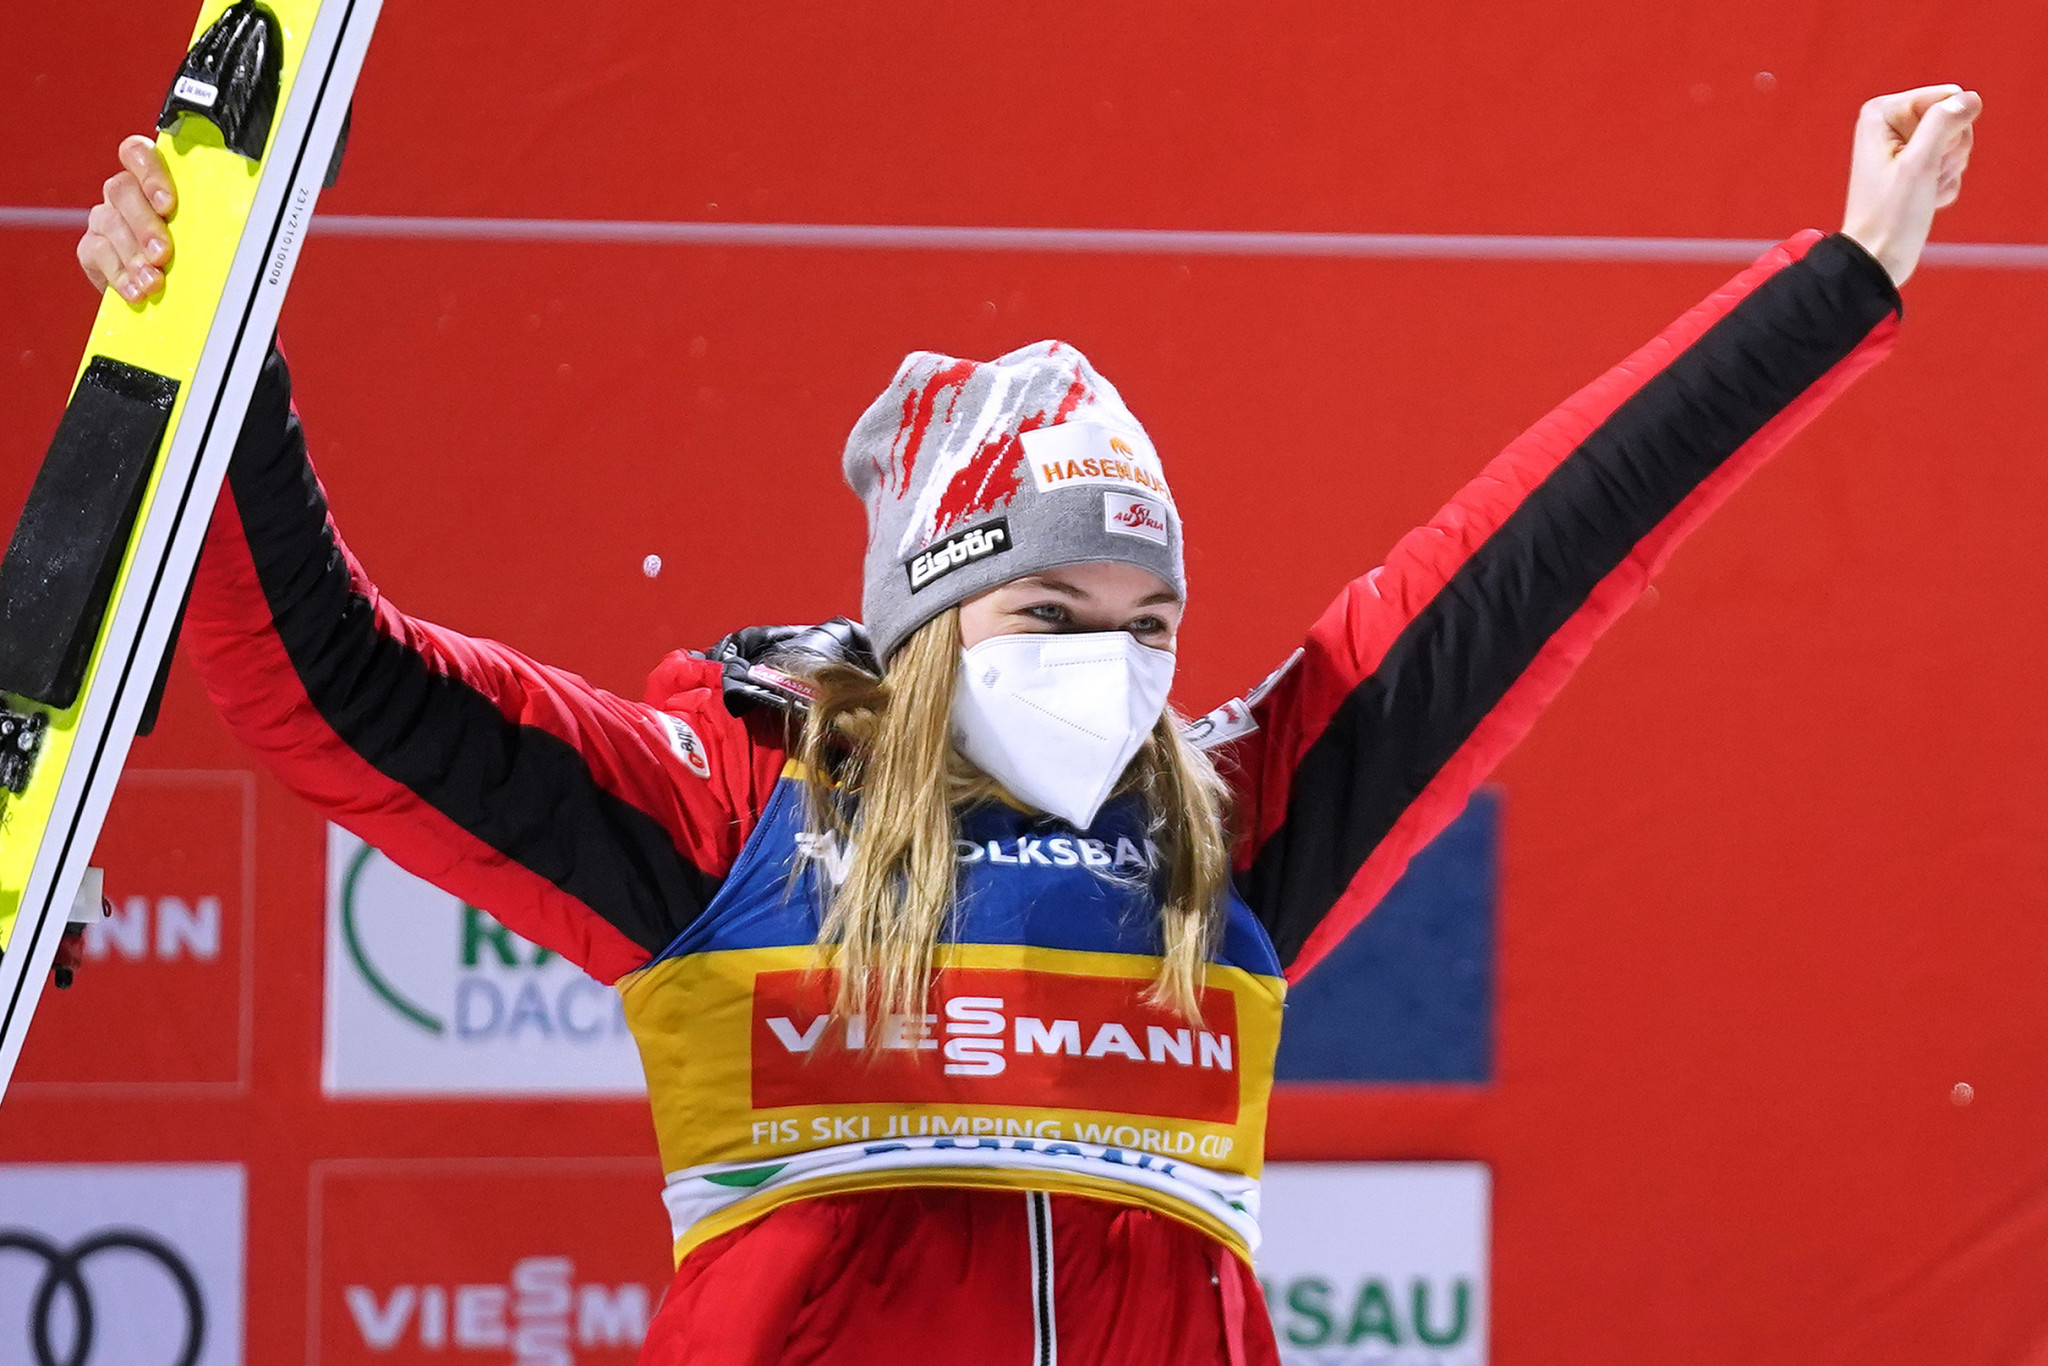 Kramer continues to impress with FIS Women's Ski Jumping World Cup win in Ramsau